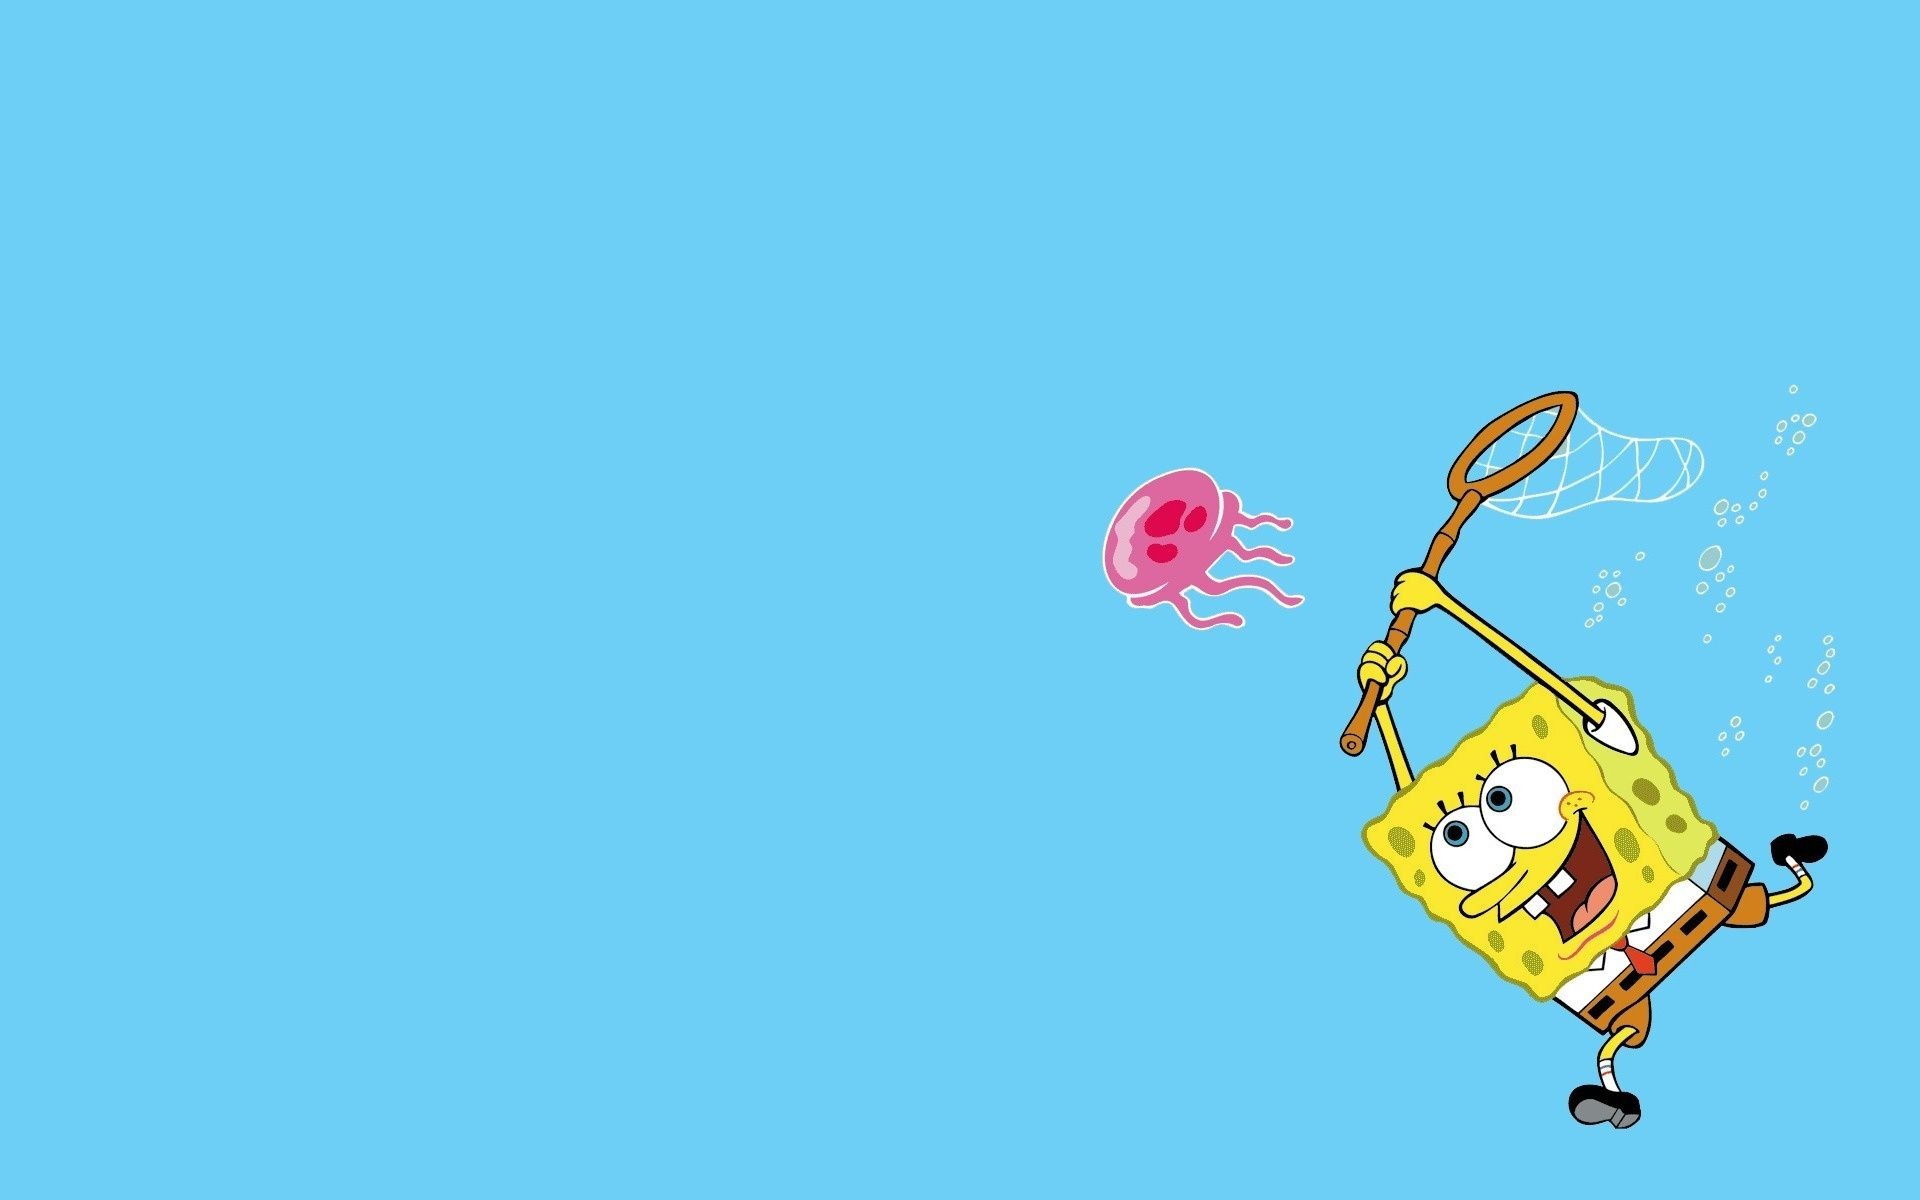 Spongebob Squarepants Wallpapers | Free Pictures Download For ...